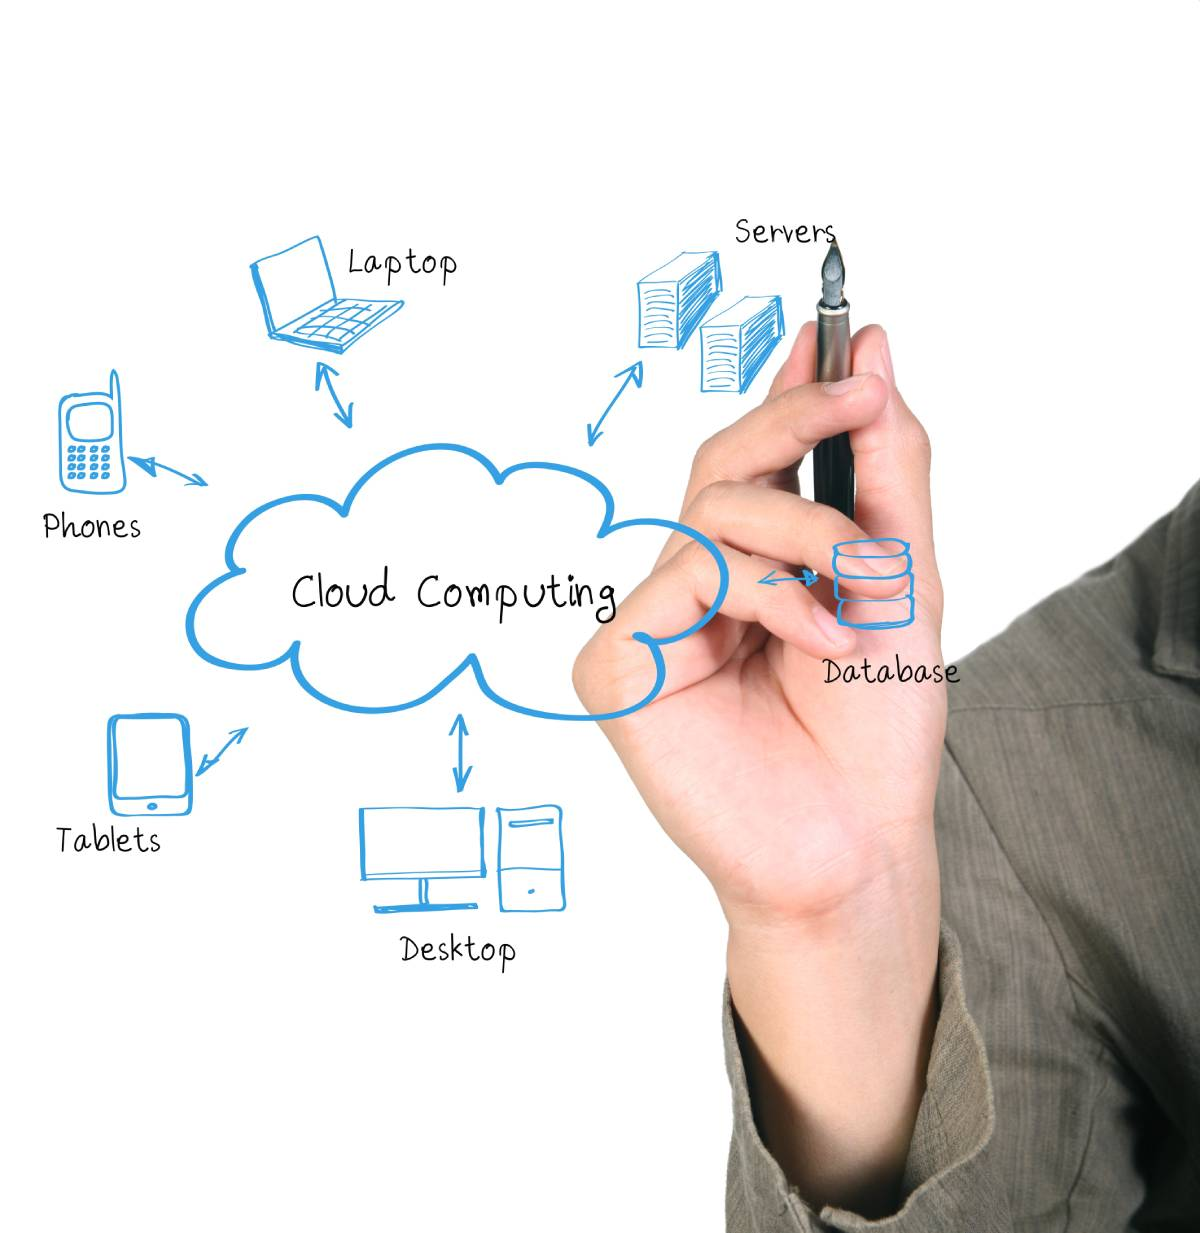 A man holding a pen drawing a cloud with various devices connected to it with arrows